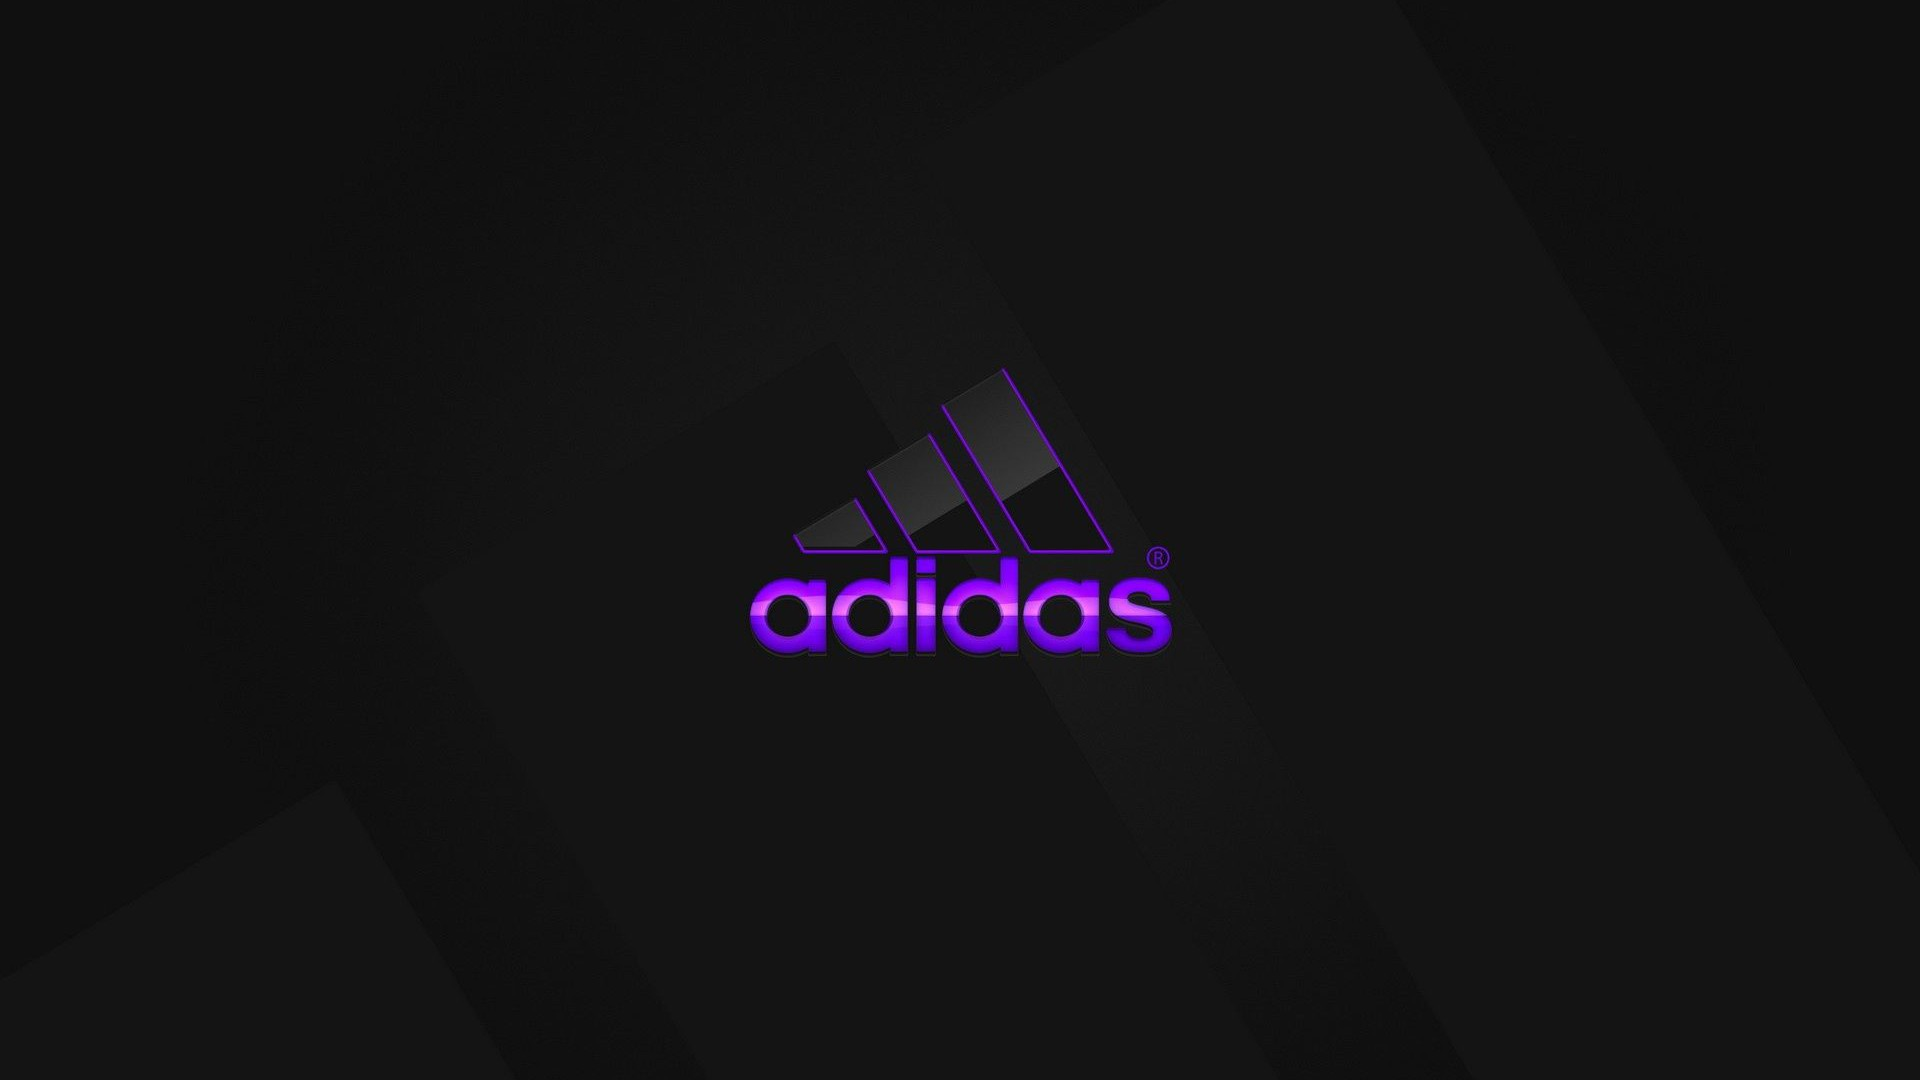 3d Colour Wallpaper Adidas Wallpapers High Quality Download Free